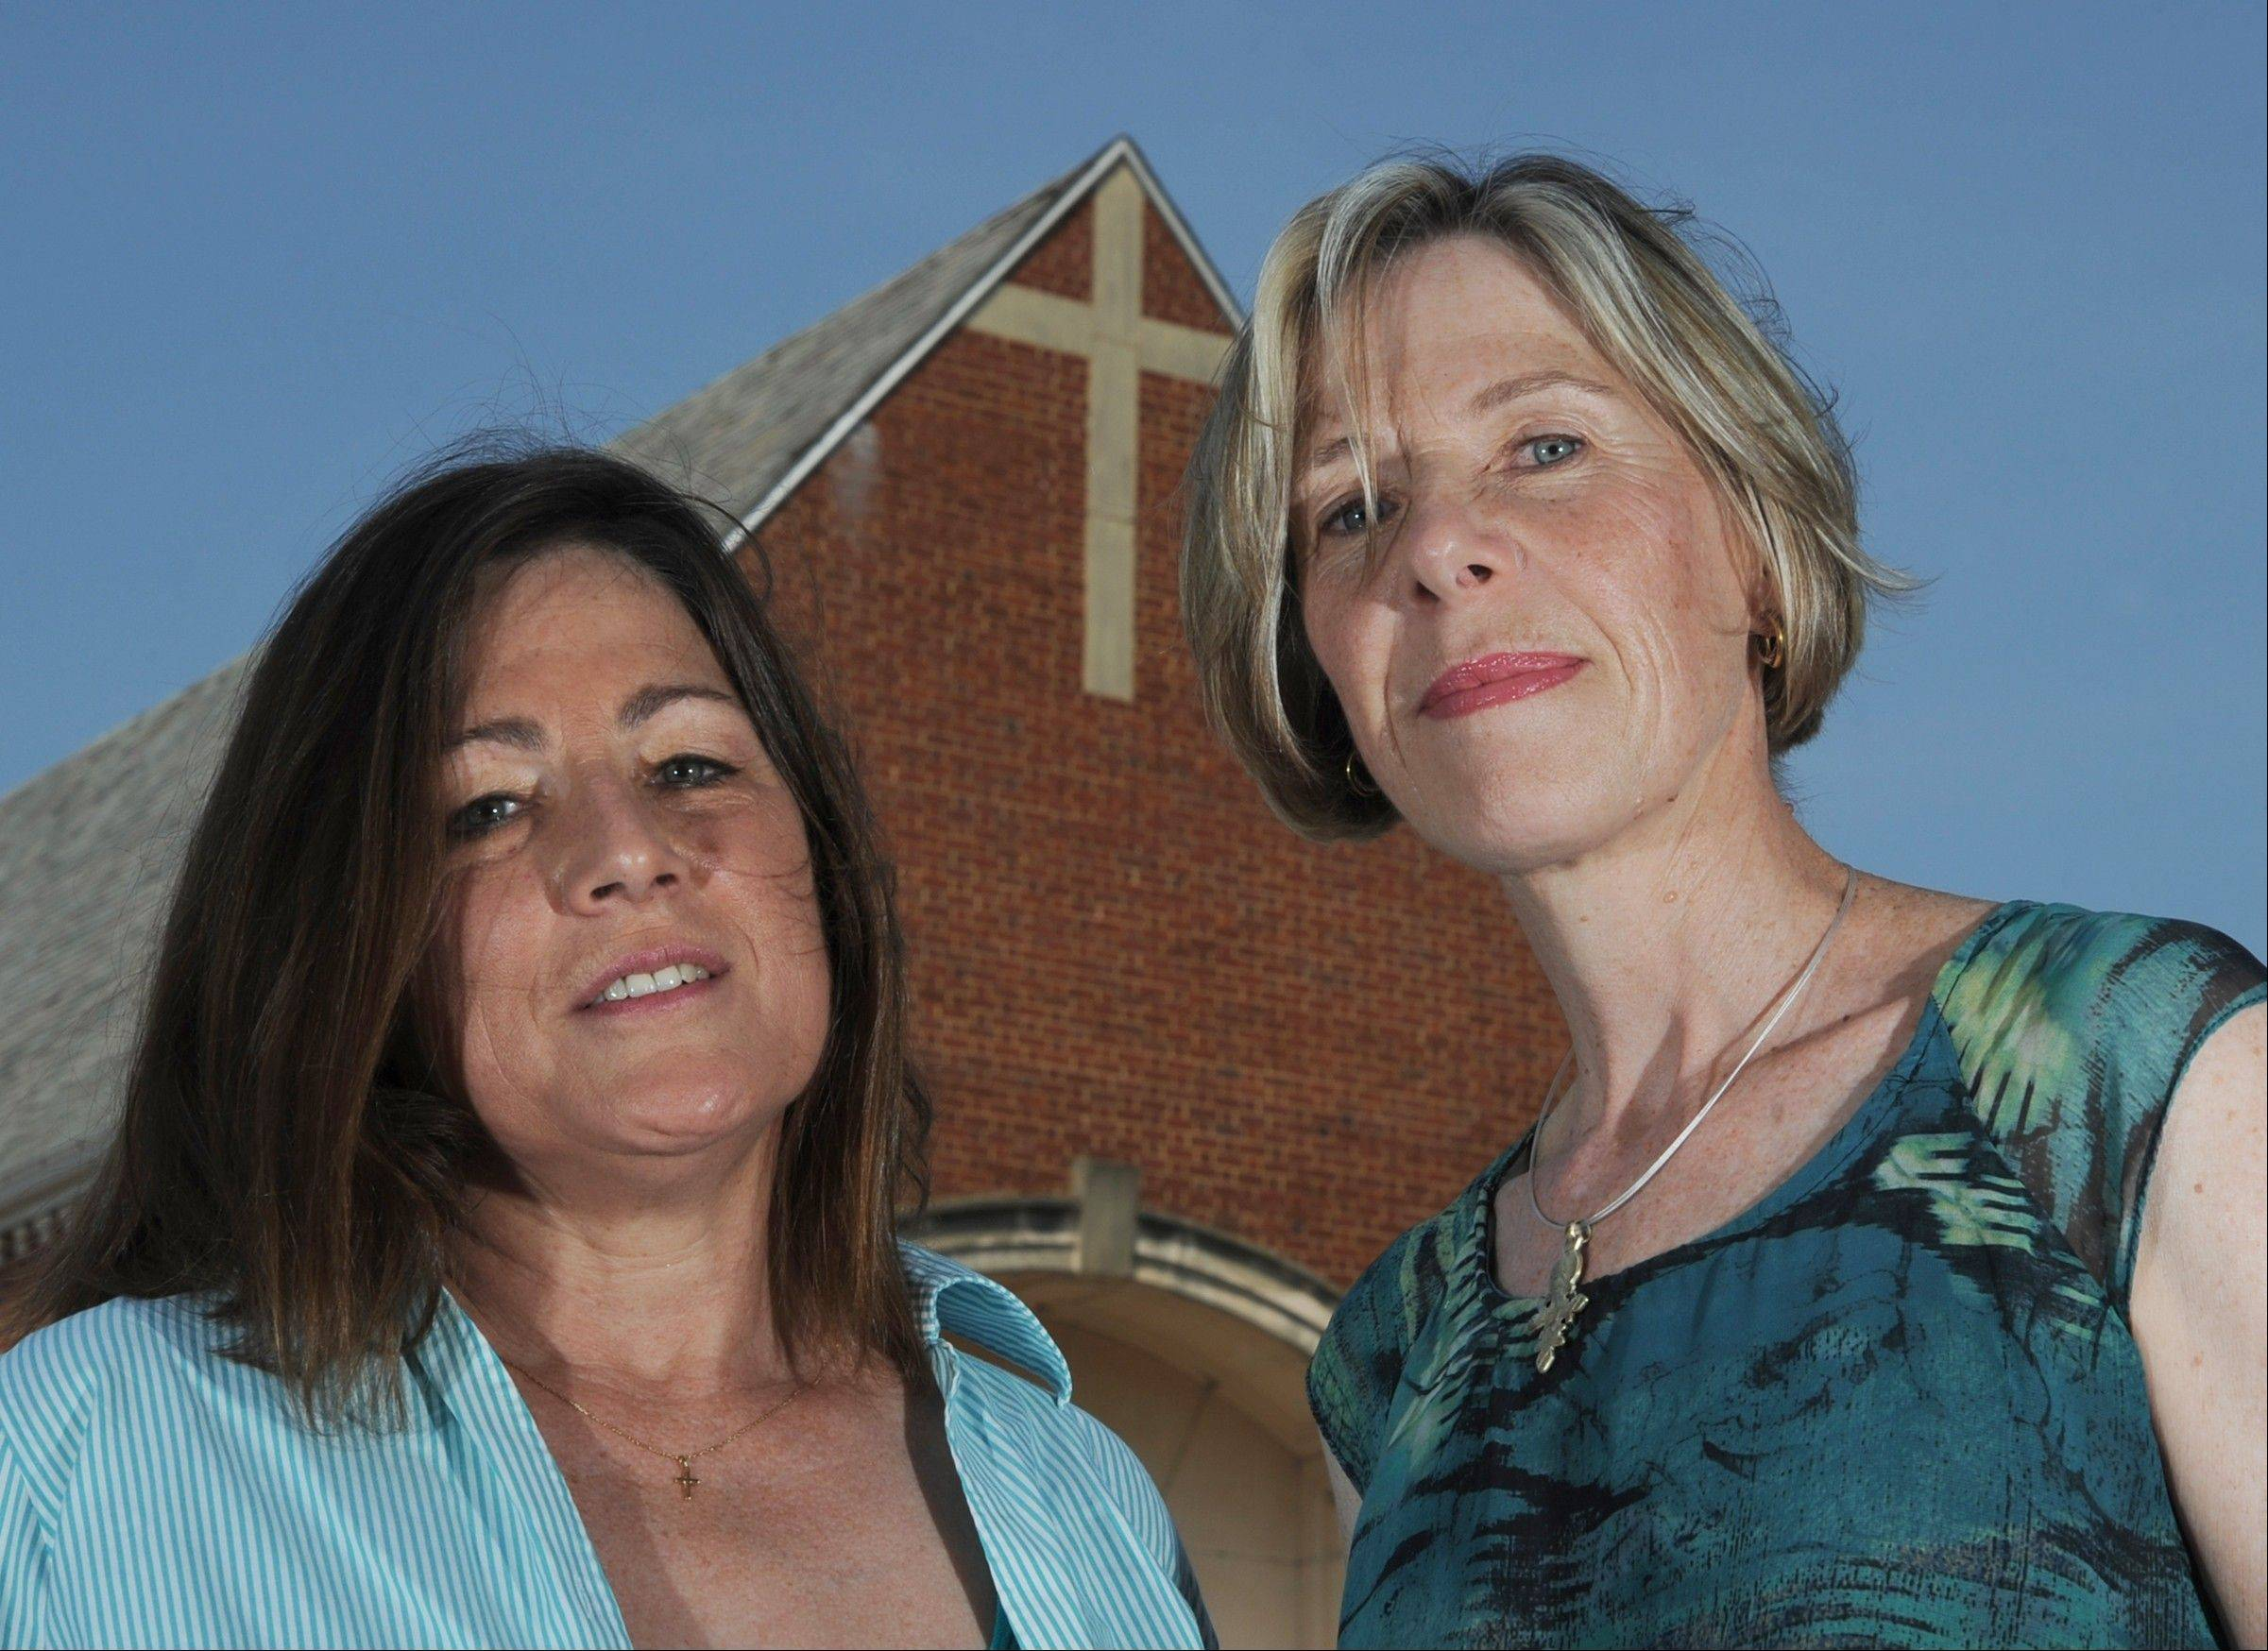 Kathleen Riley, left, and Alison Carroll resigned as teachers at St. Ann Catholic Church in Arlington, Va., explaining they would not sign a new Profession of Faith required by their bishop.